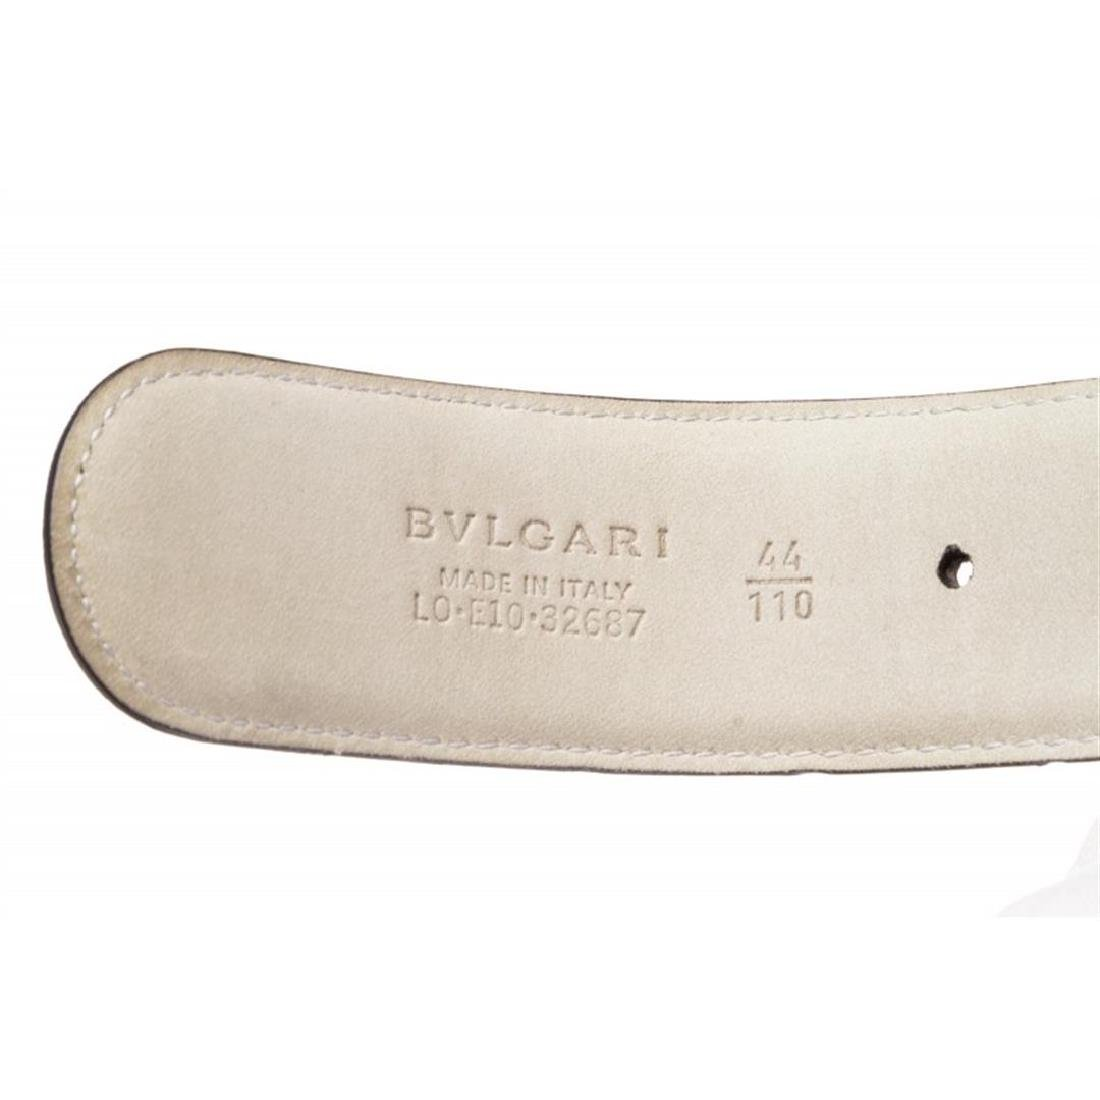 Bvlgari Black Gray Coated Canvas Leather Belt - 5